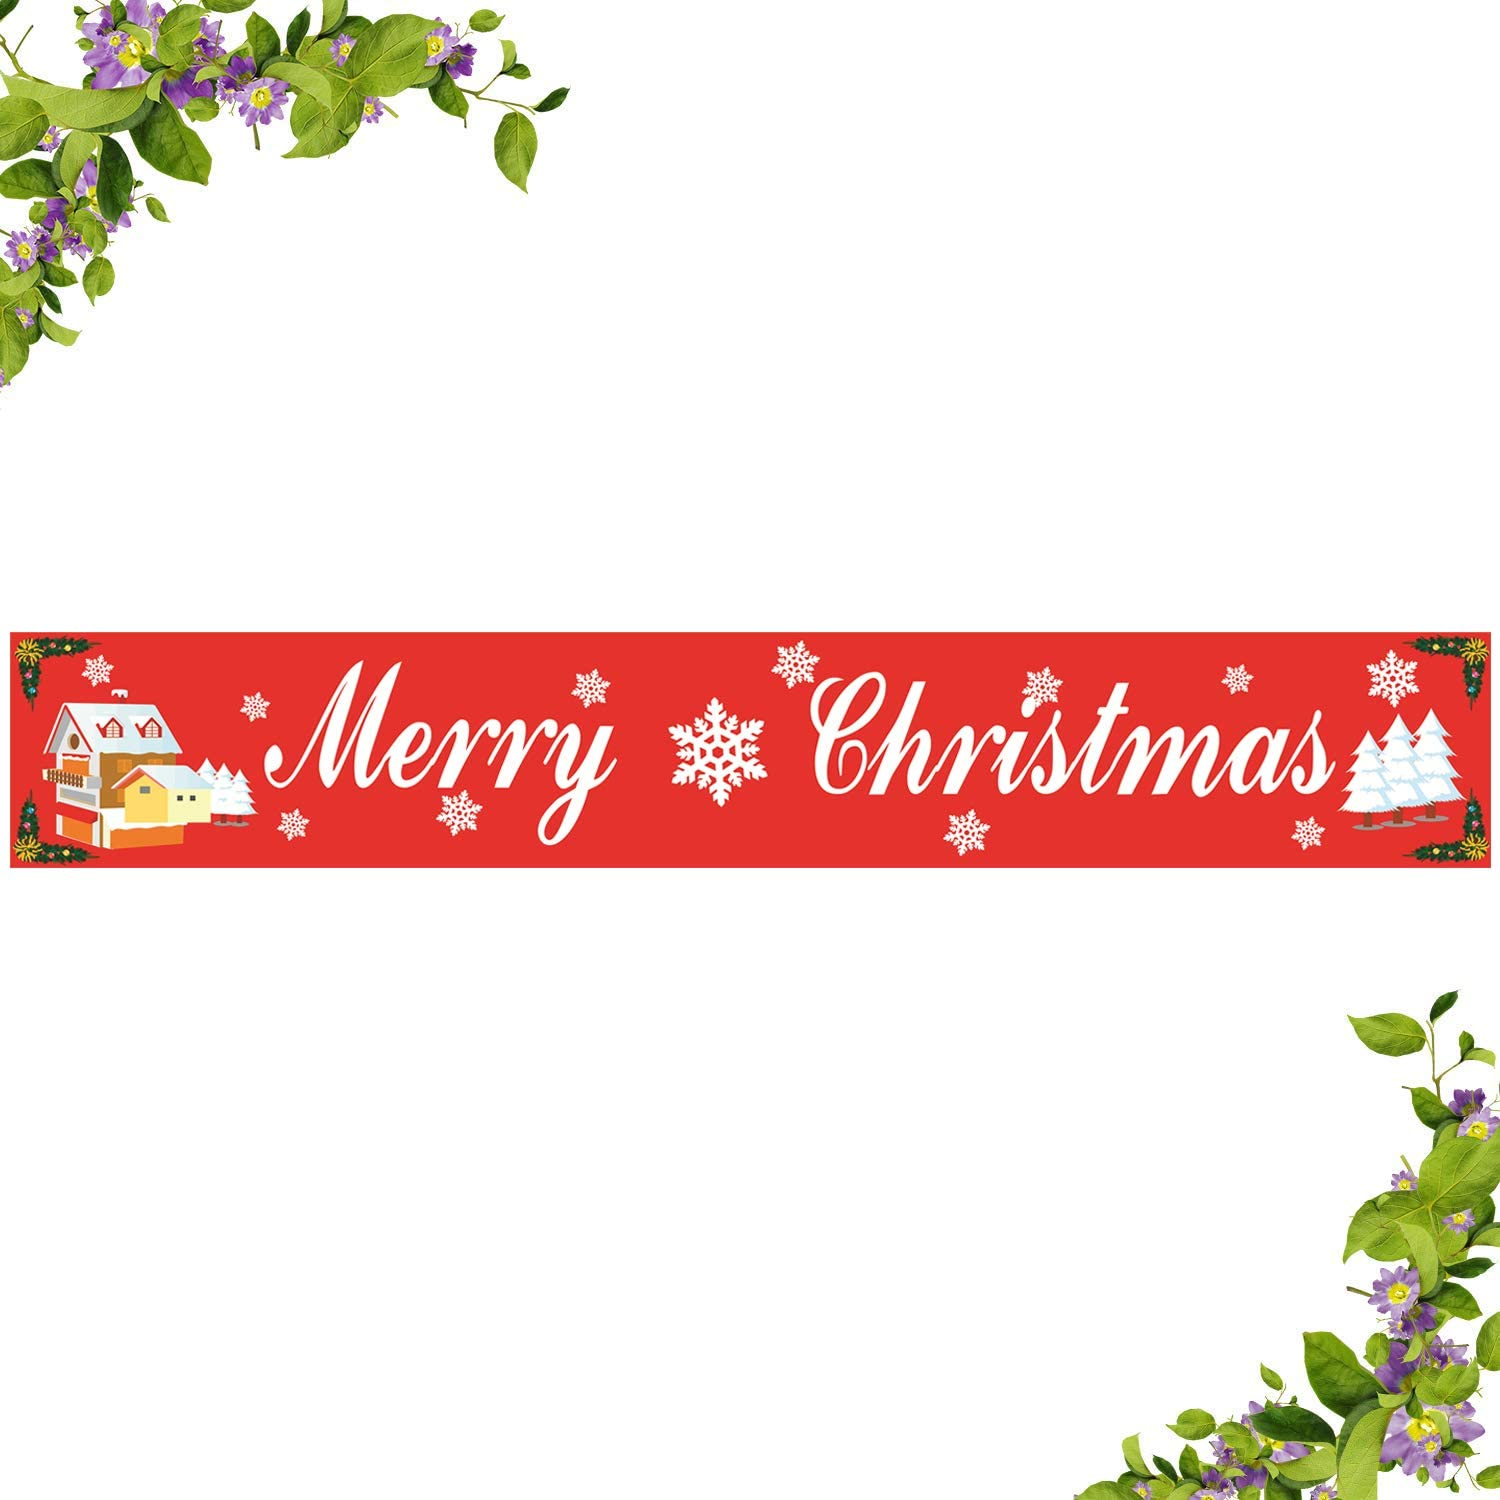 amazon com large merry christmas banner be merry flag happy new year party outdoor decoration supplies 8 2 x 1 3 feet toys games large merry christmas banner be merry flag happy new year party outdoor decoration supplies 8 2 x 1 3 feet